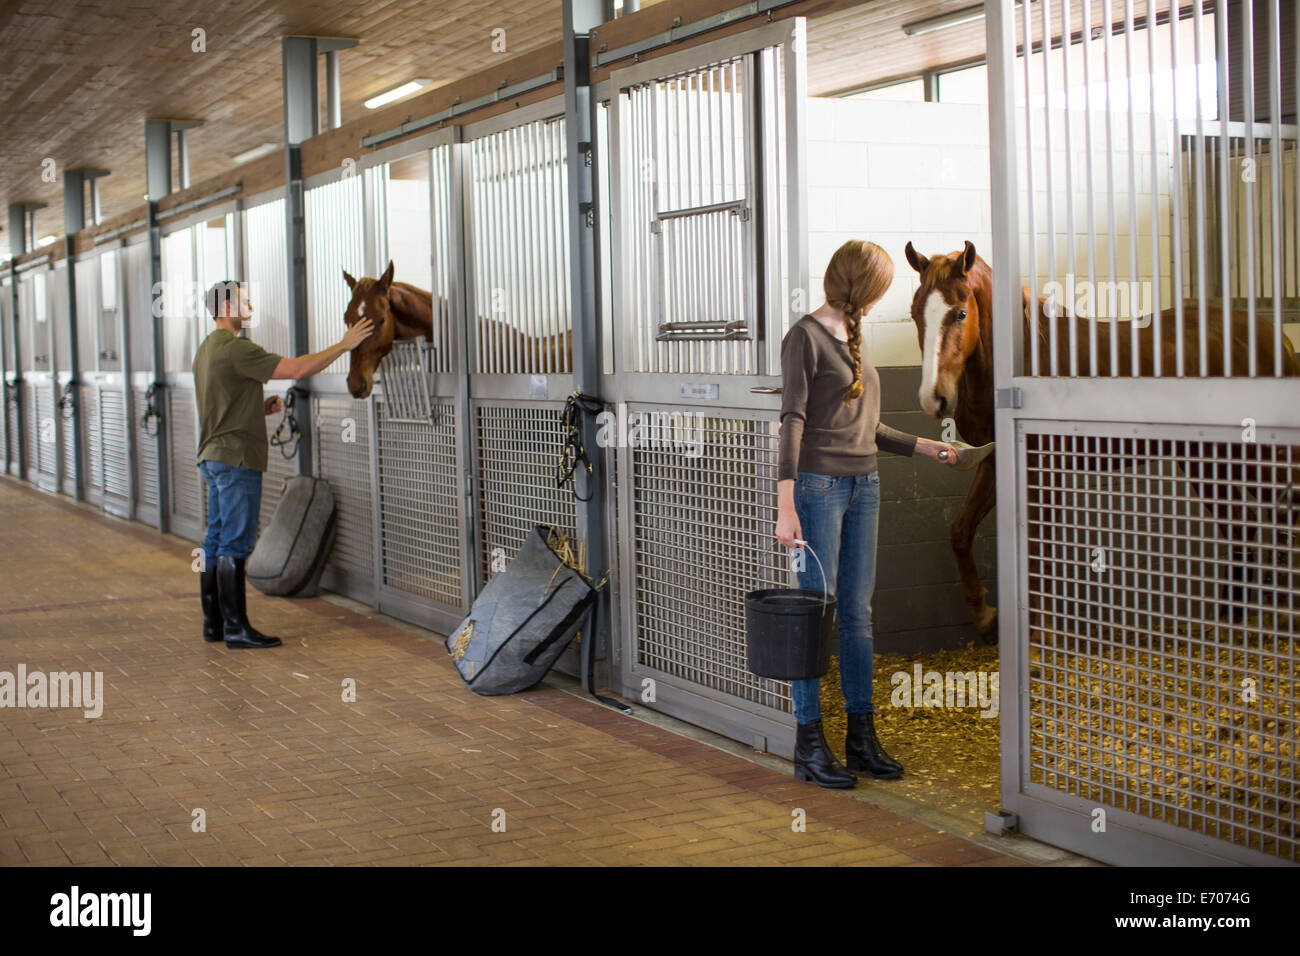 Stablehands feeding horses in stables - Stock Image